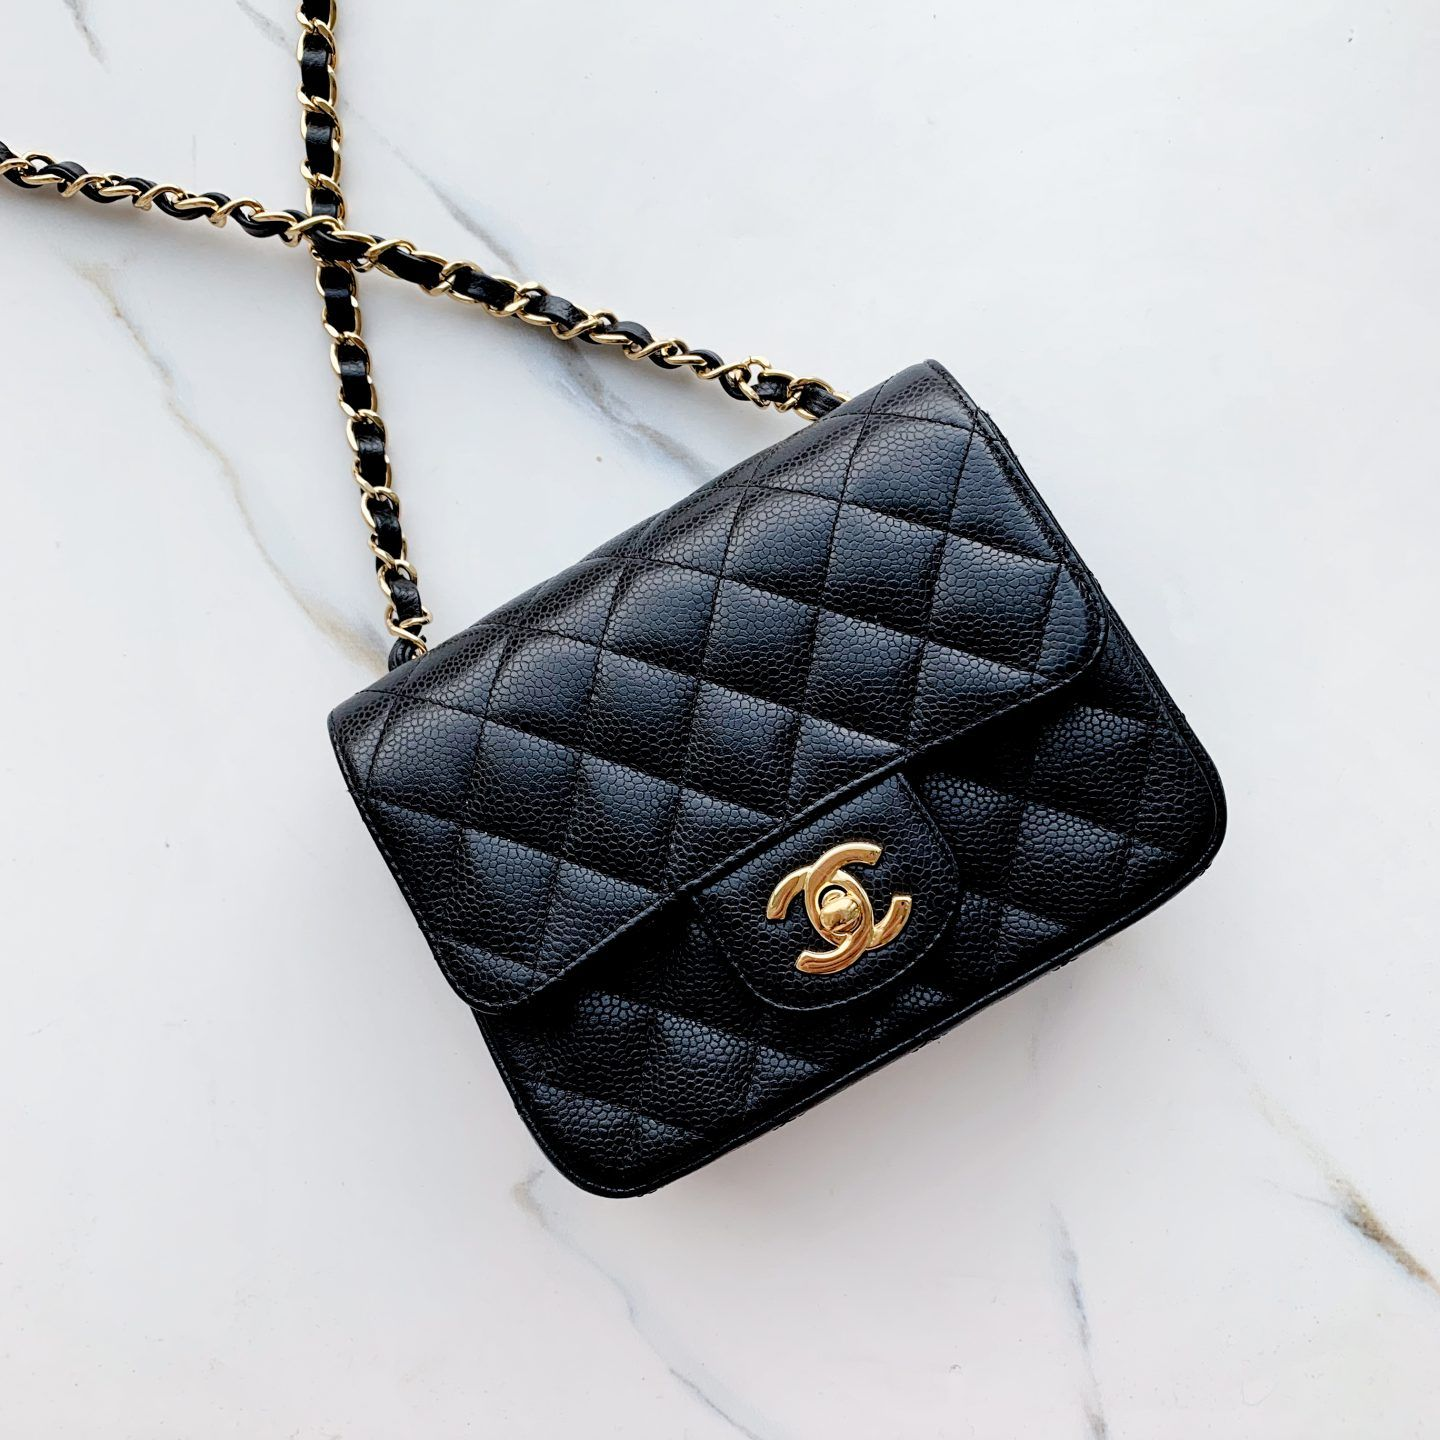 The Best First Chanel Bag? - Chase Amie